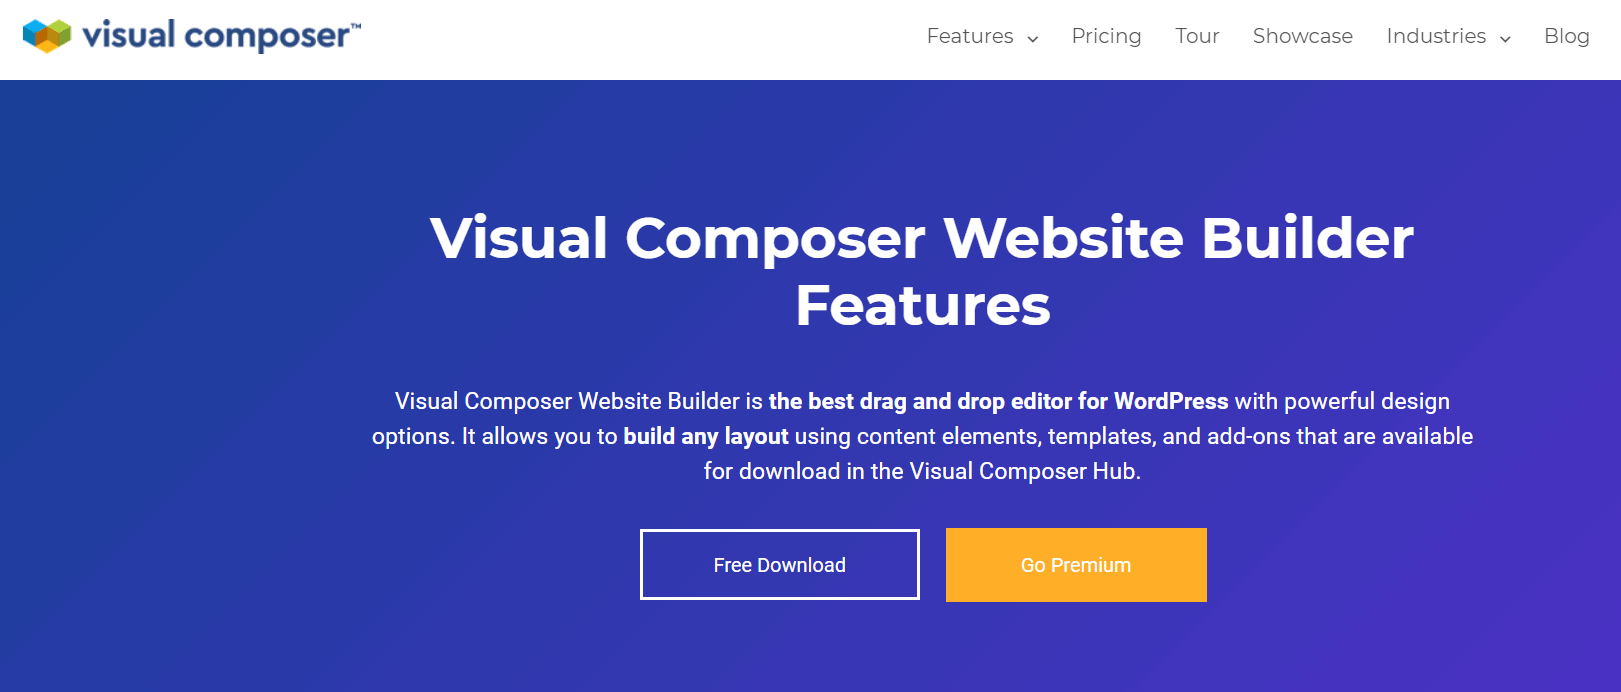 visual composer features